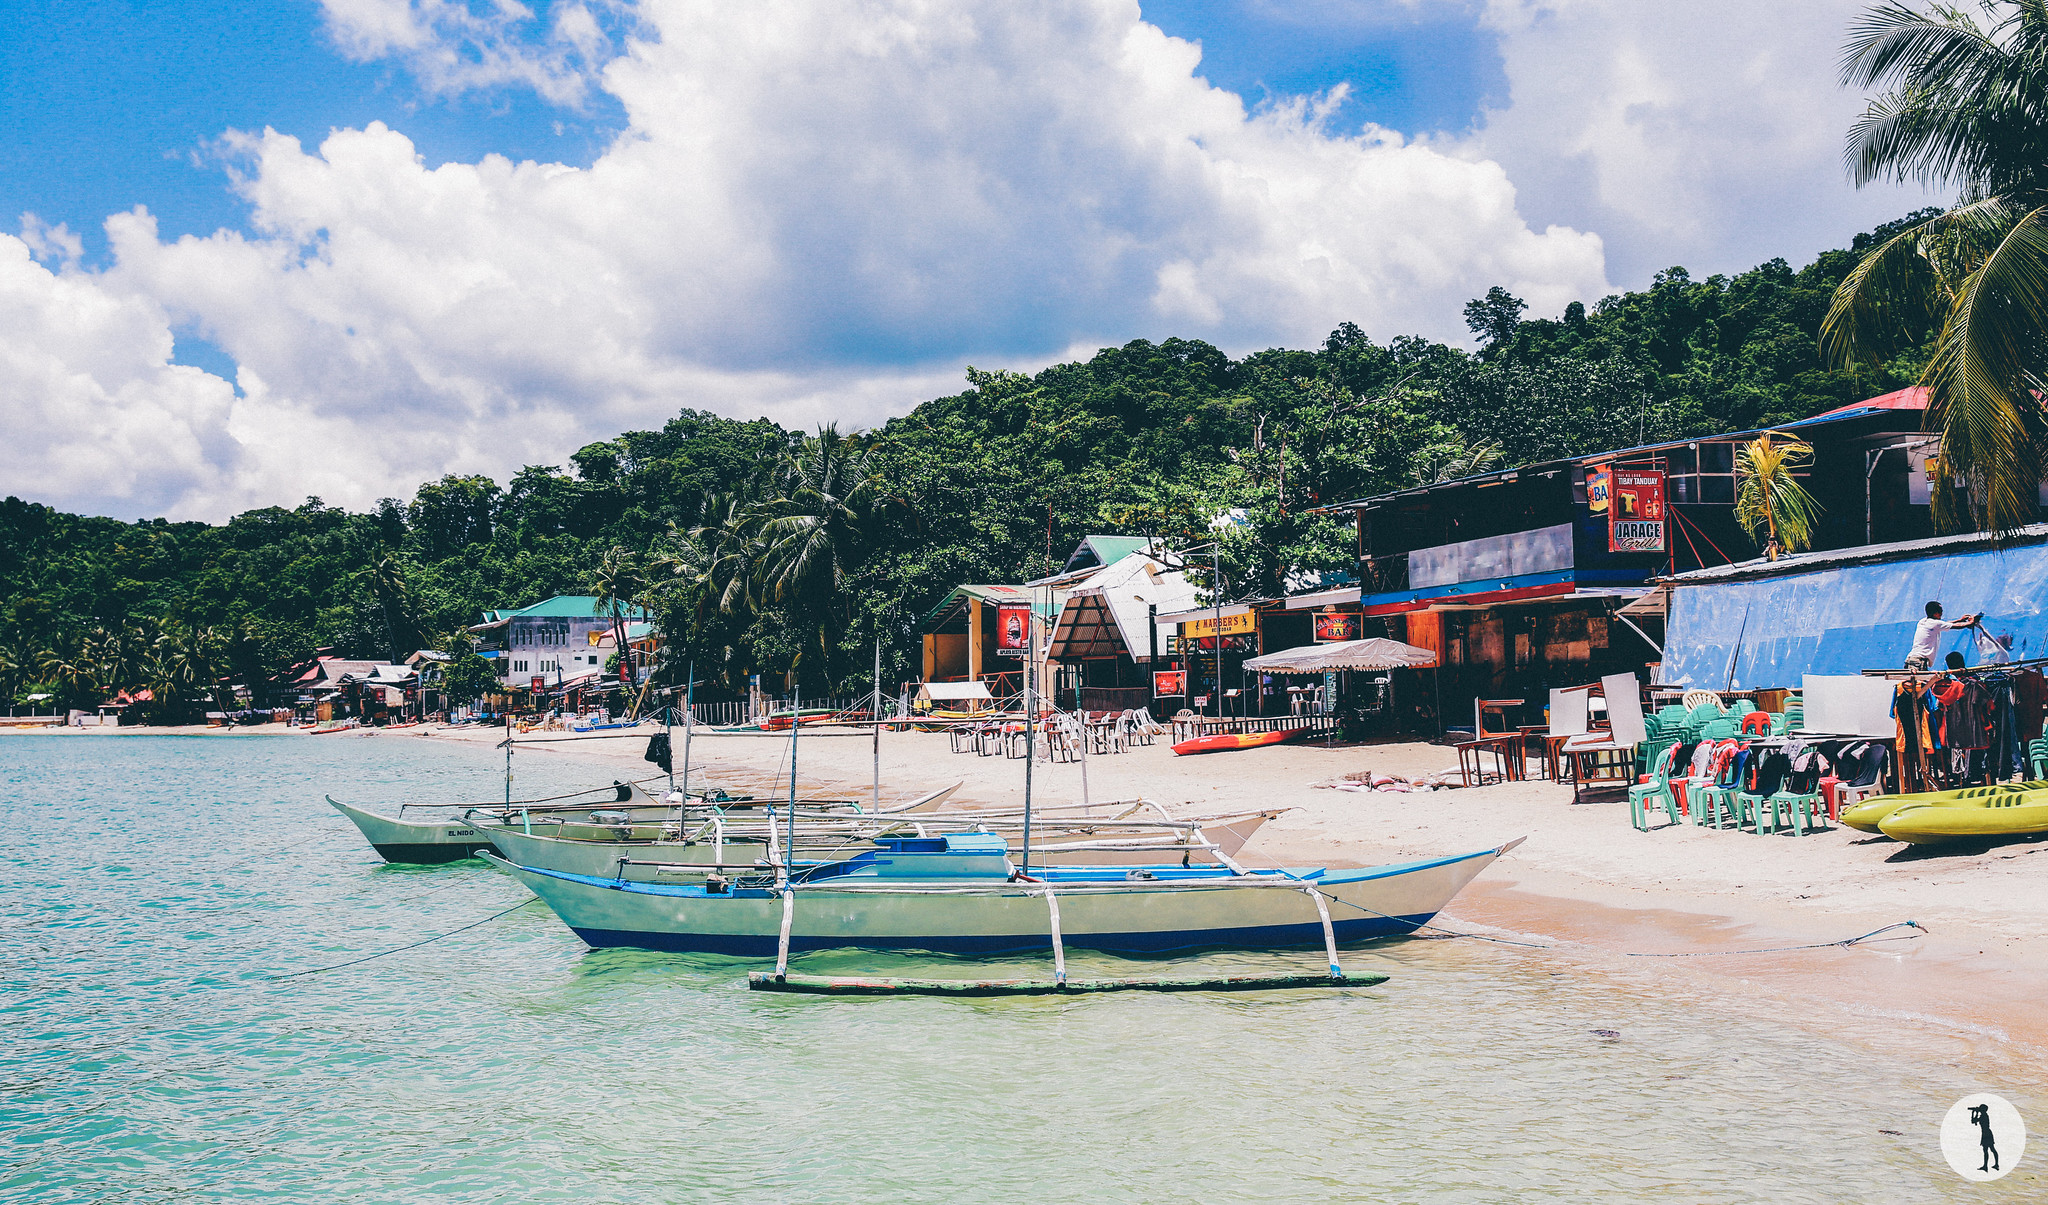 Travel to the Philippines - El Nido, Palawan